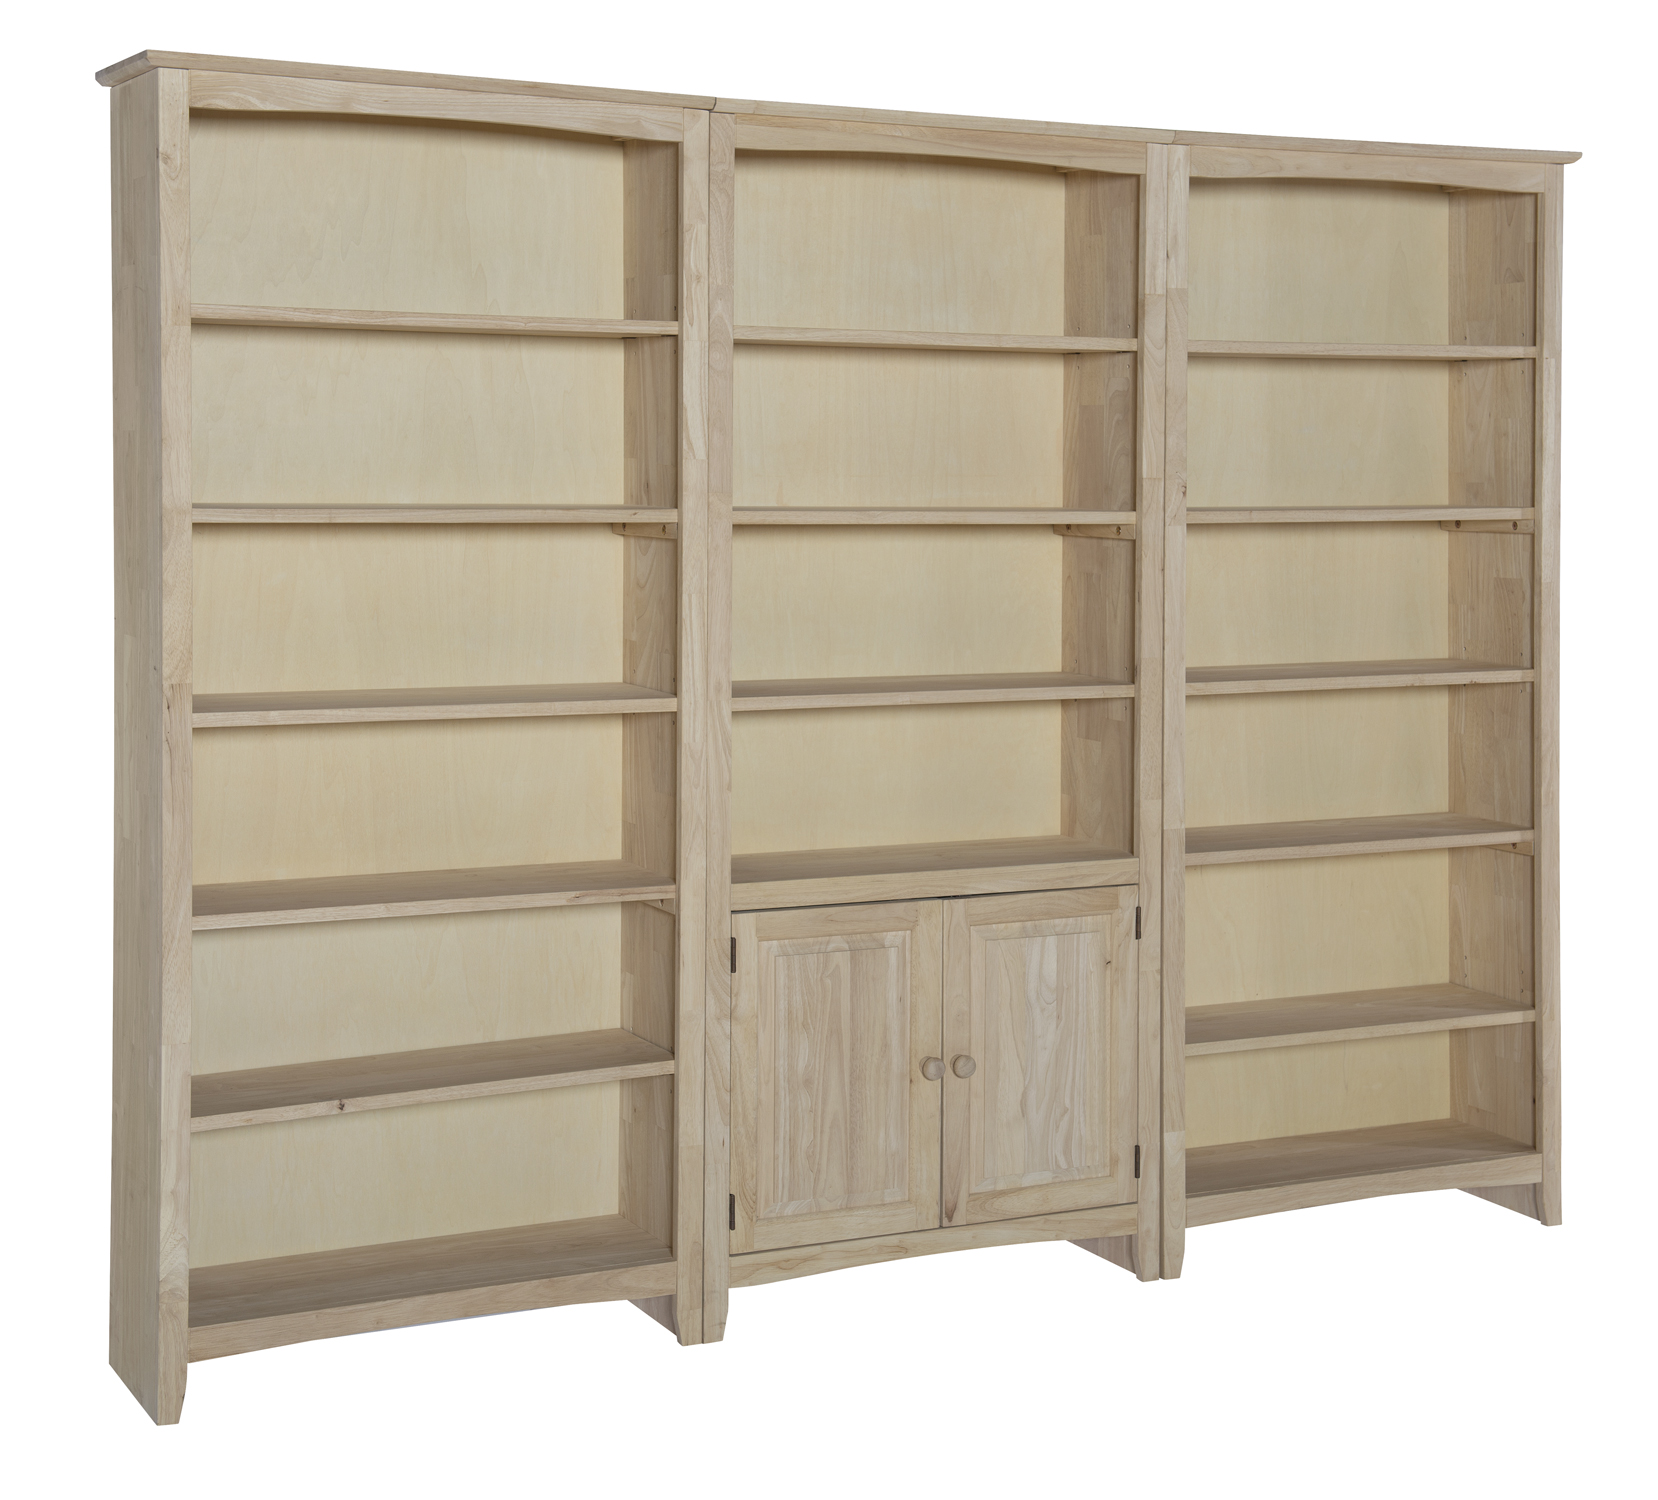 Parawood Bookcases door kit